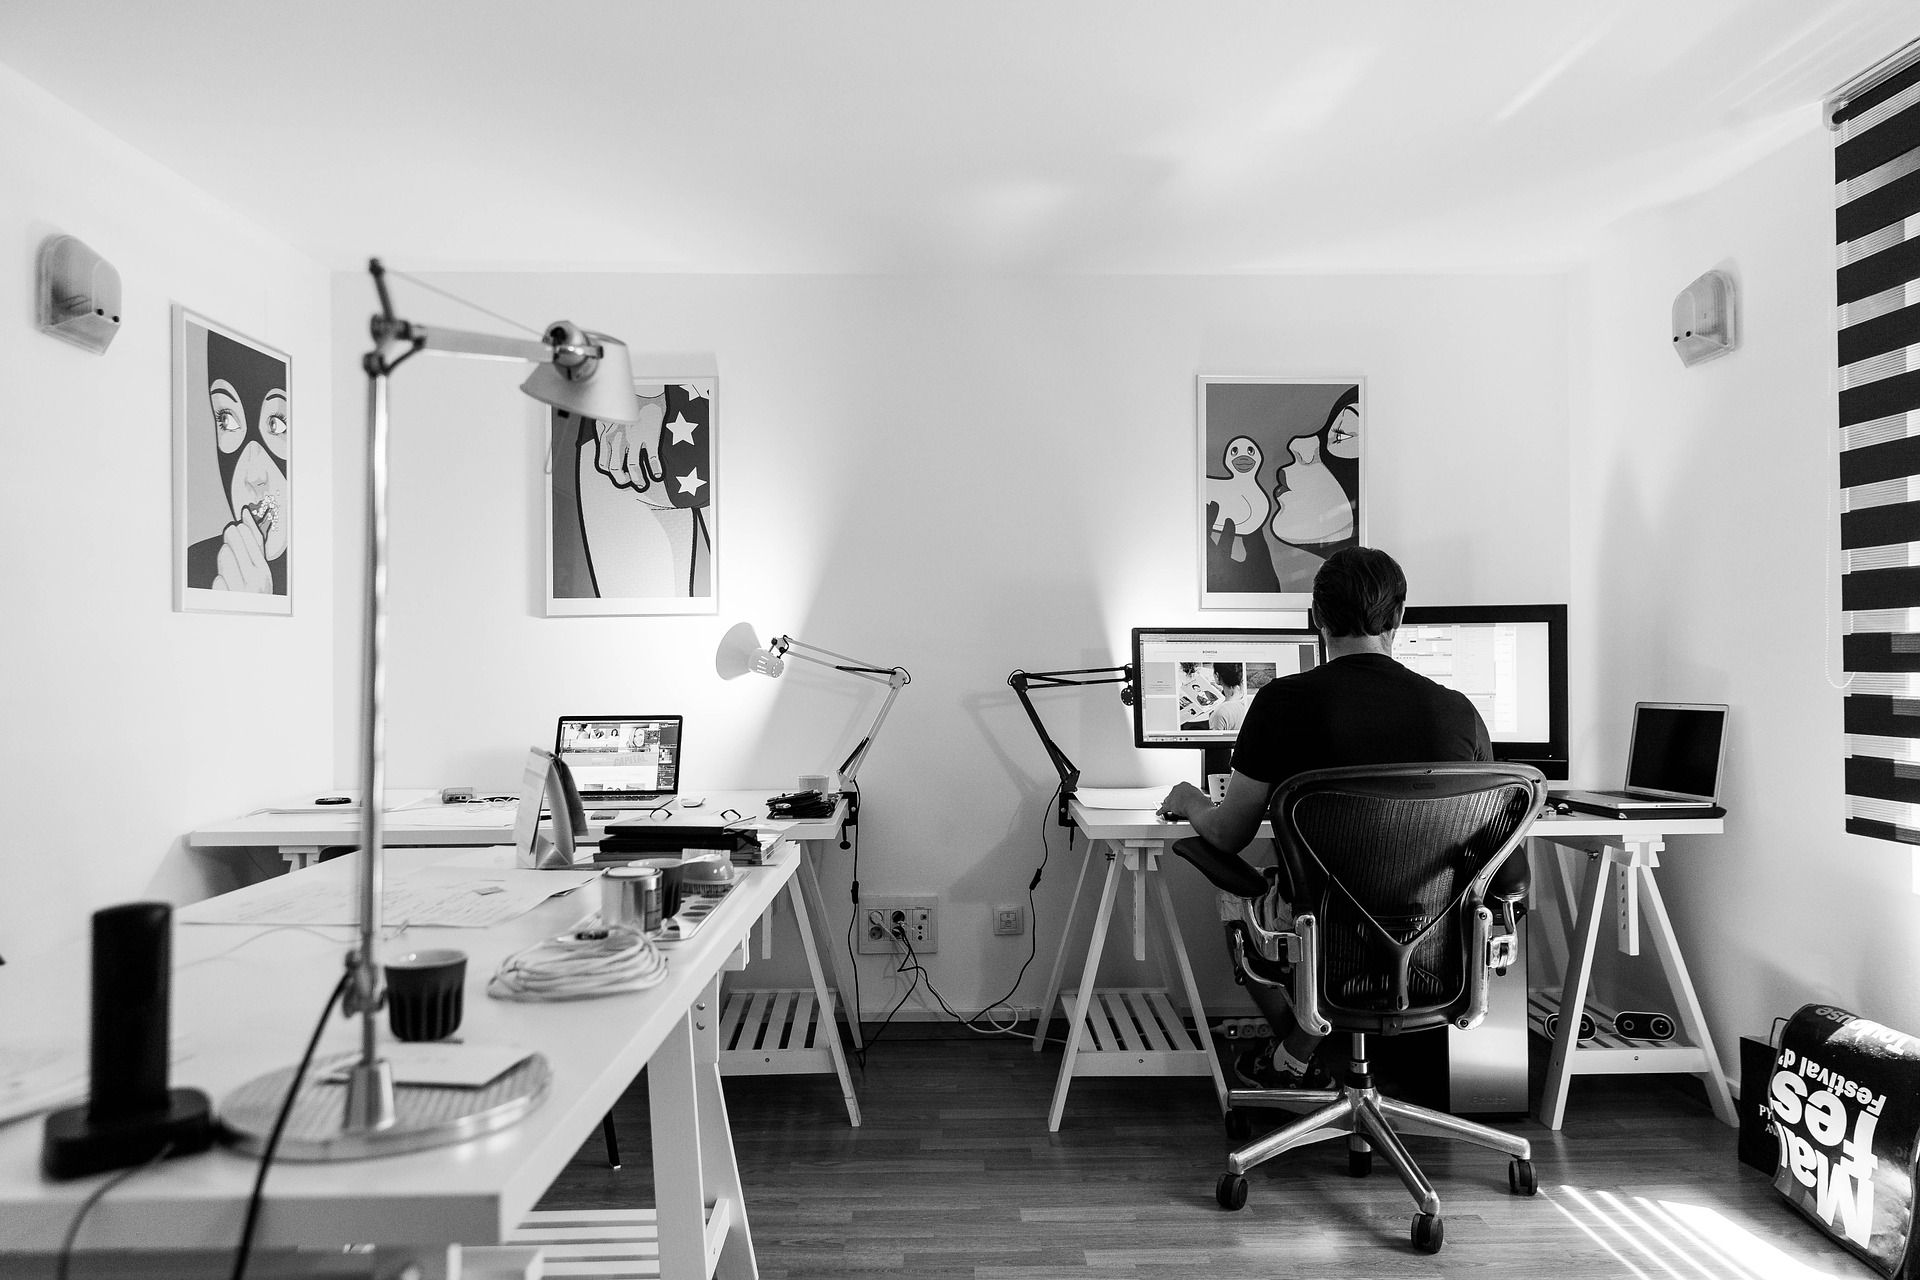 The best home office setup for productivity also includes a good video conferencing home office plan.